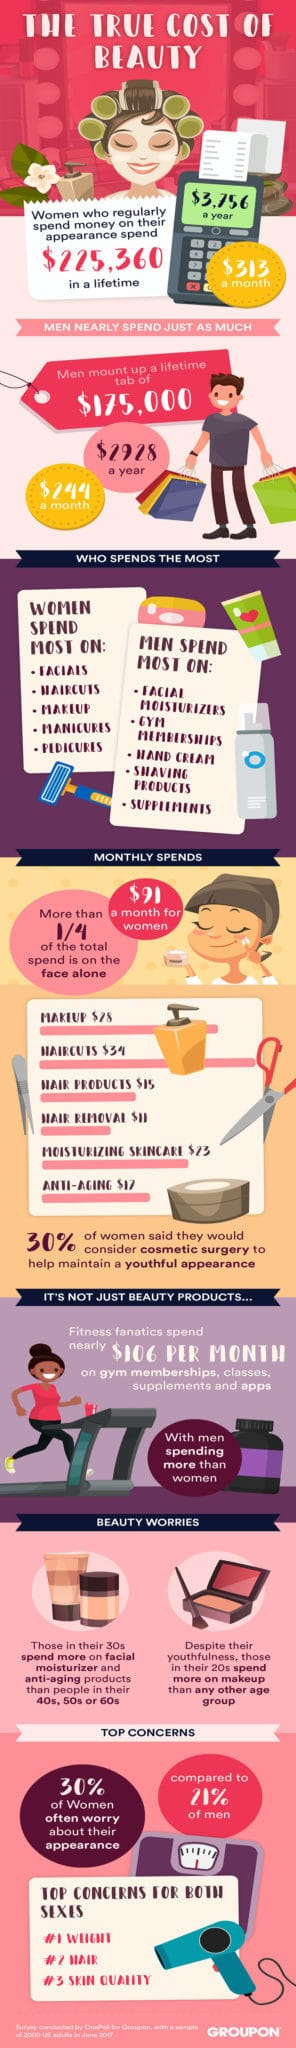 Group survey reveals the true cost of beauty: Infographic displaying stats of men and women's beauty habits